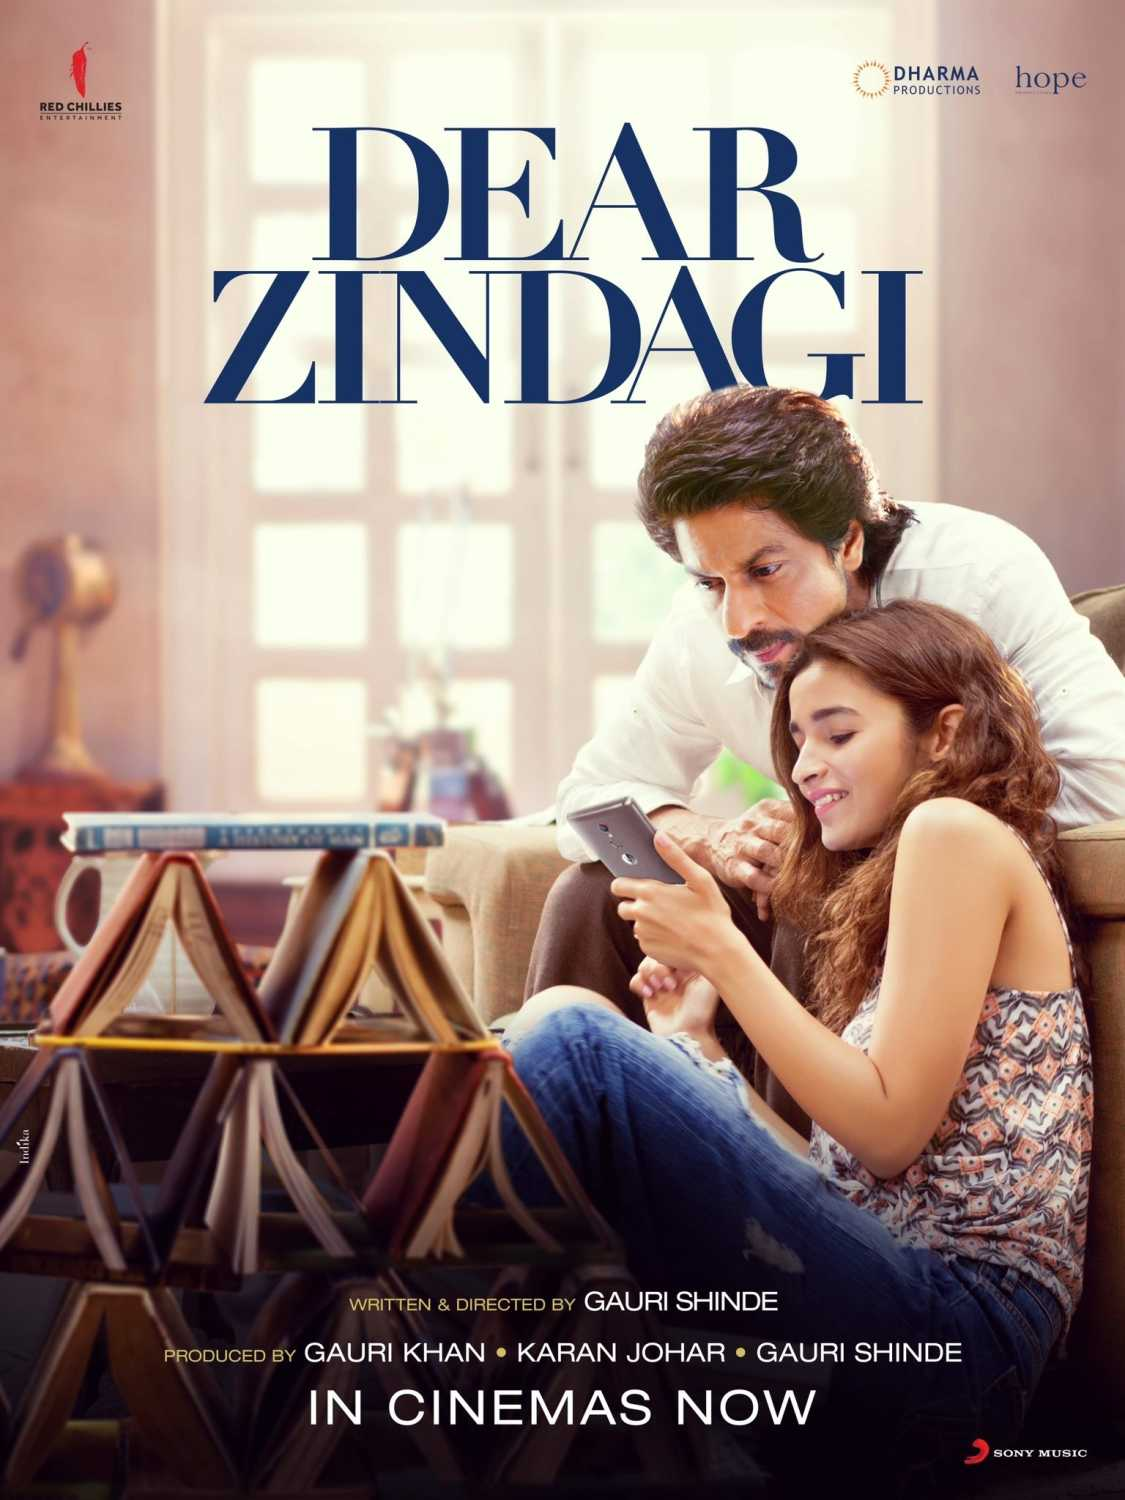 Dear Zindagi 2016 Hindi DVDRip 720p 1.5GB AAC 5.1 MKV